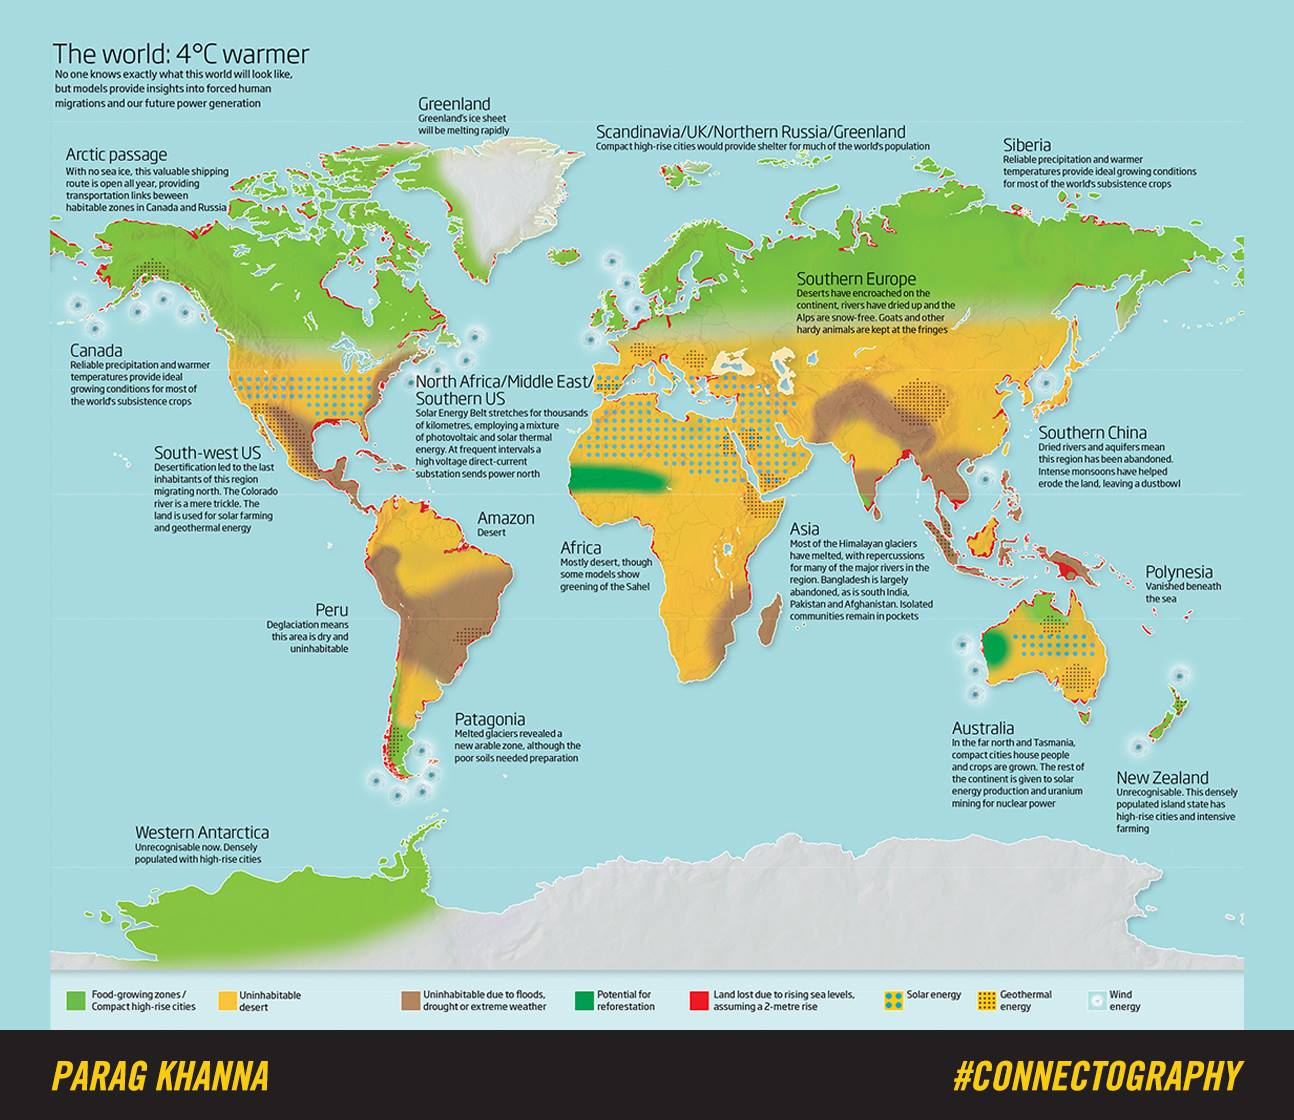 Global warming map by parag khanna shows results of 4c temp rise global warming map by parag khanna gumiabroncs Image collections